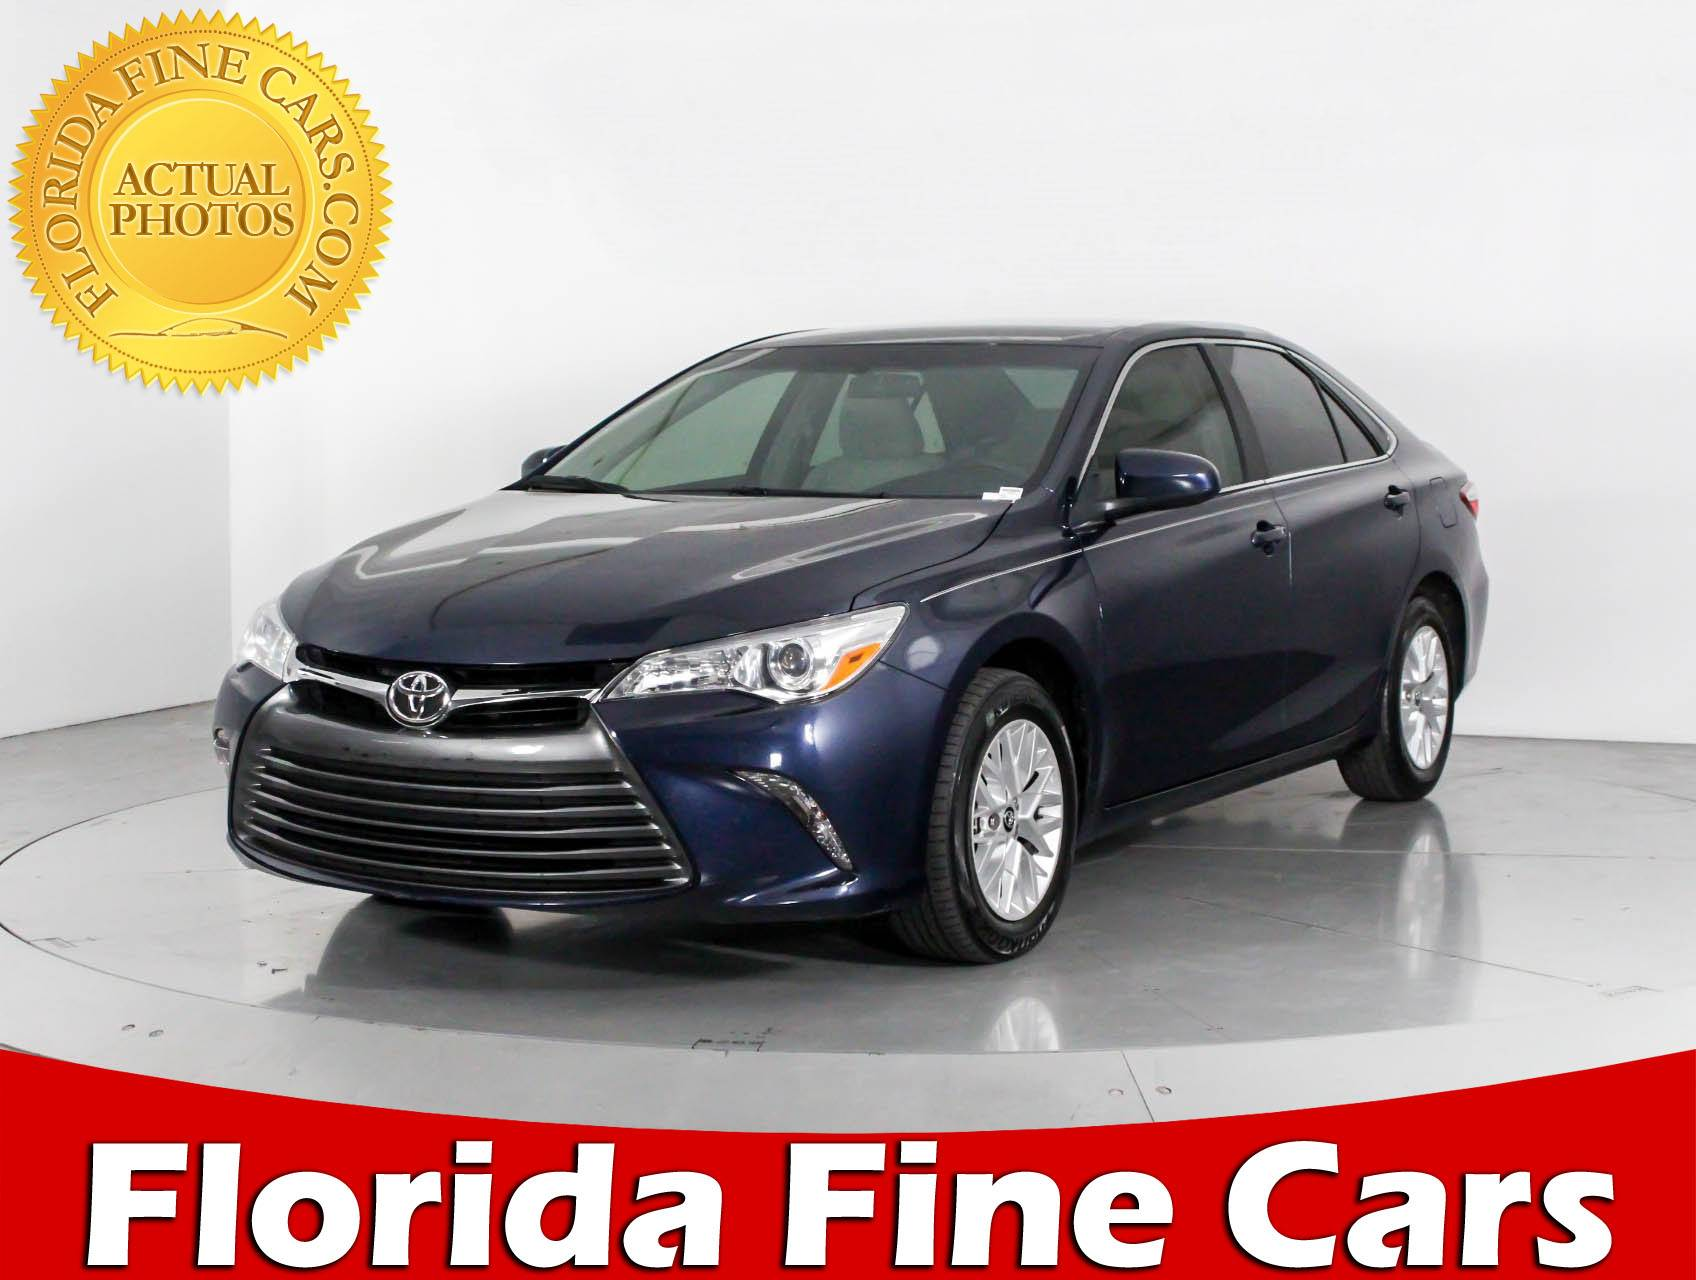 Used 2016 TOYOTA CAMRY Le Sedan for sale in WEST PALM FL